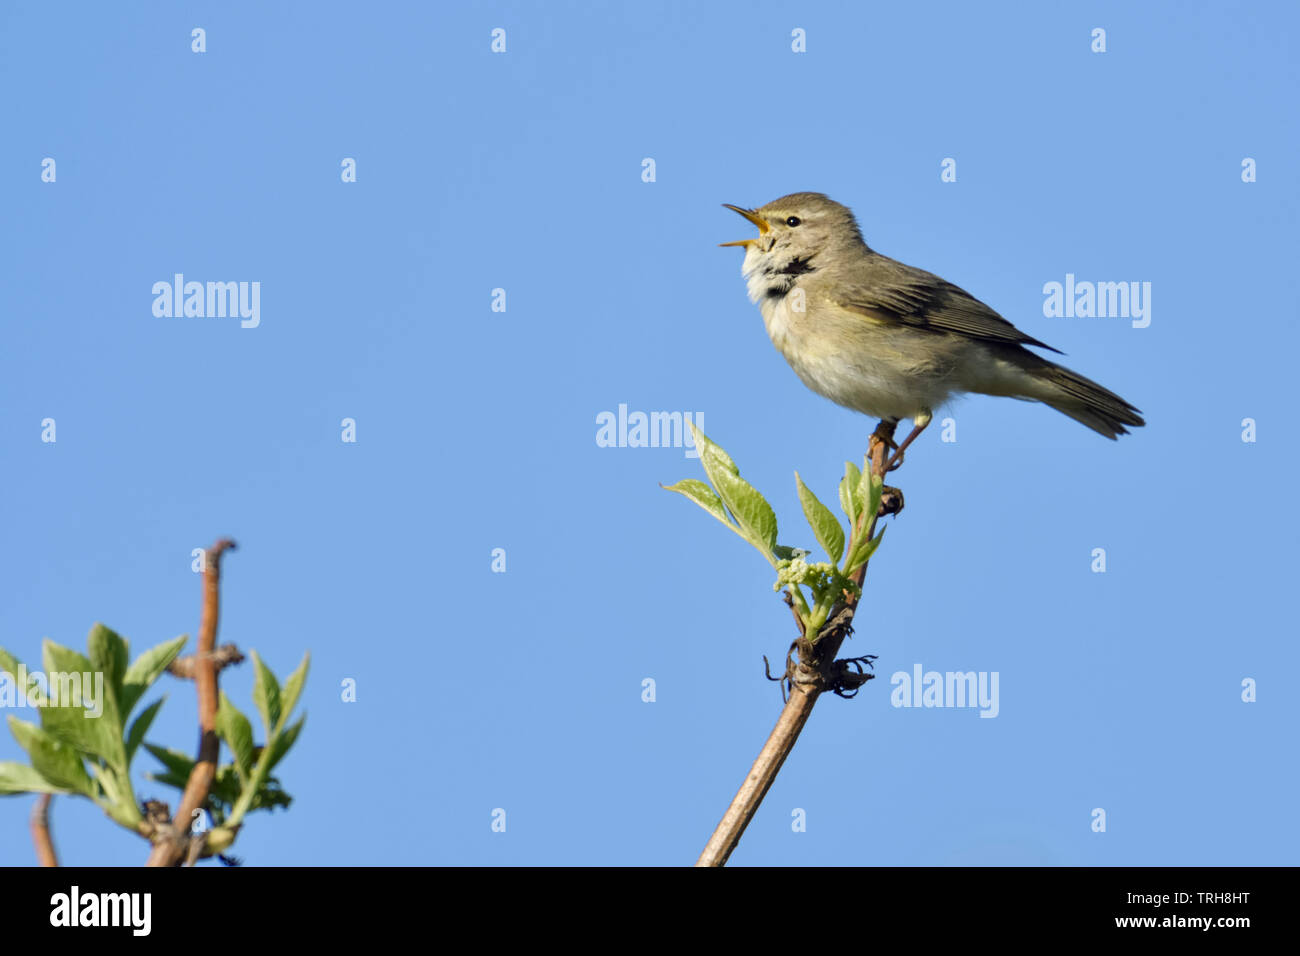 Willow Warbler / Fitis ( Phylloscopus trochilus ), adult male in spring, perched on top of an elder bush, singing, wildlife, Europe. Stock Photo